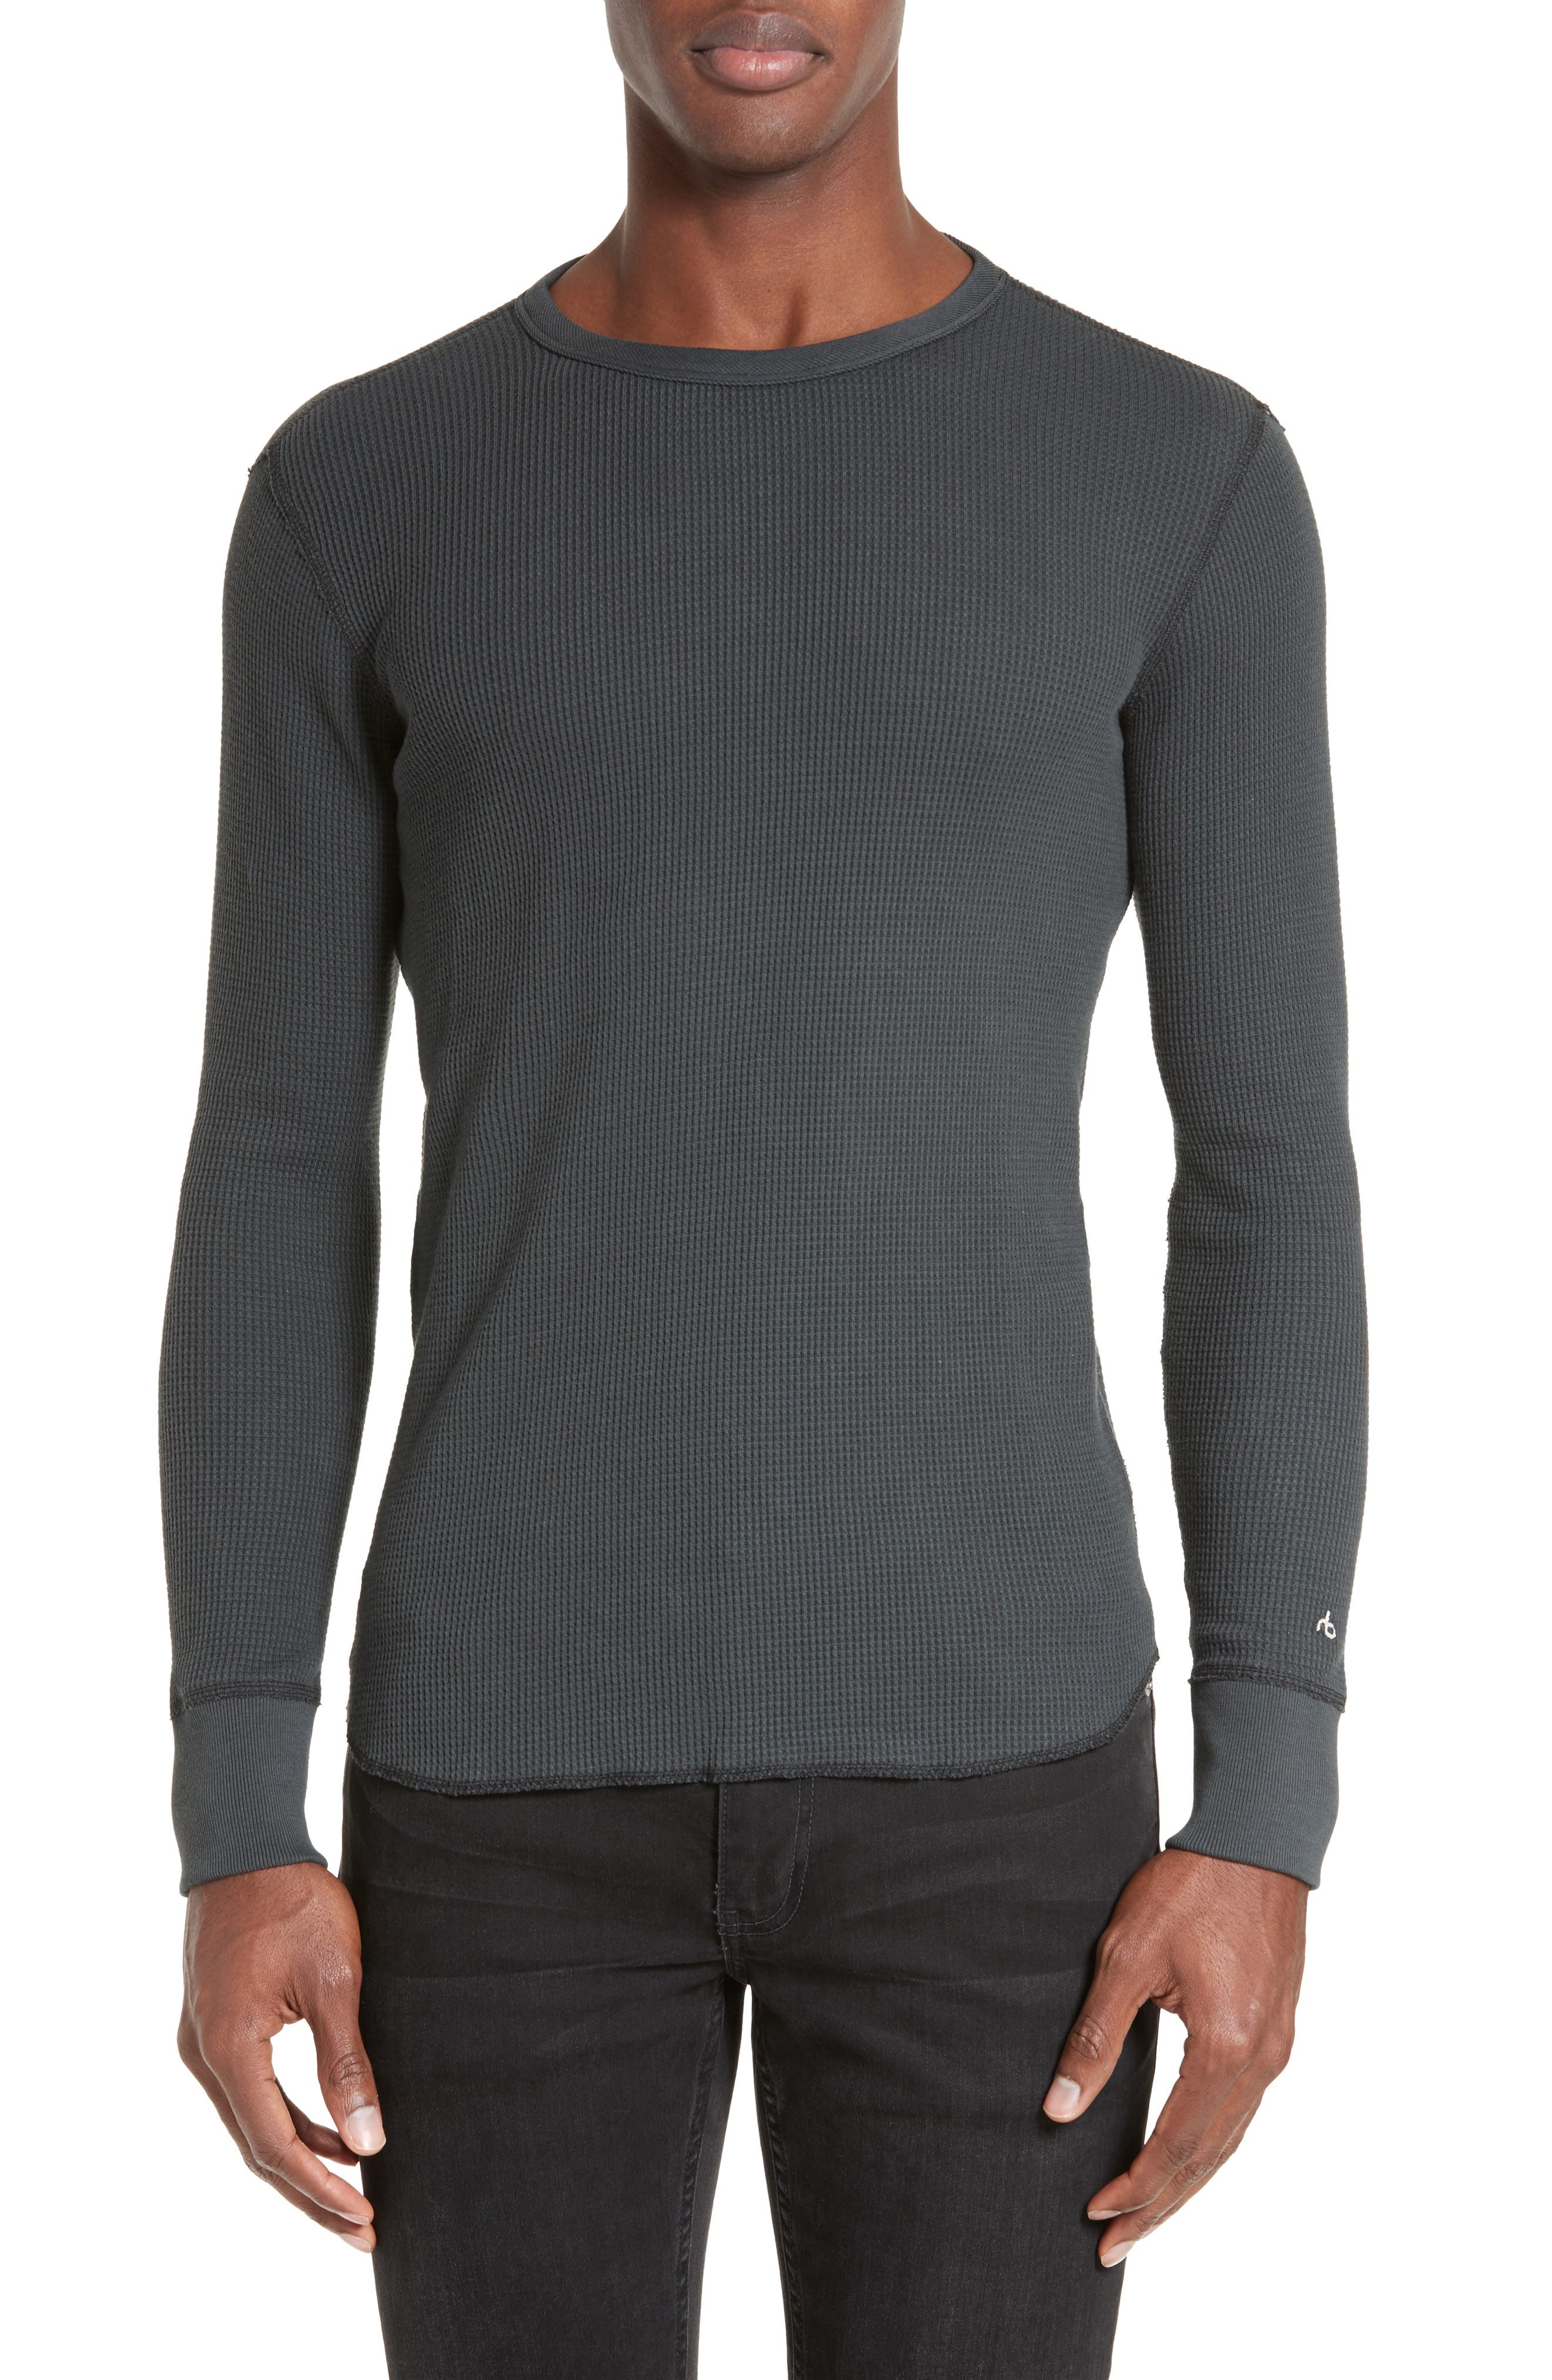 Free shipping BOTH ways on mens long sleeve thermal shirts, from our vast selection of styles. Fast delivery, and 24/7/ real-person service with a smile. Click or call